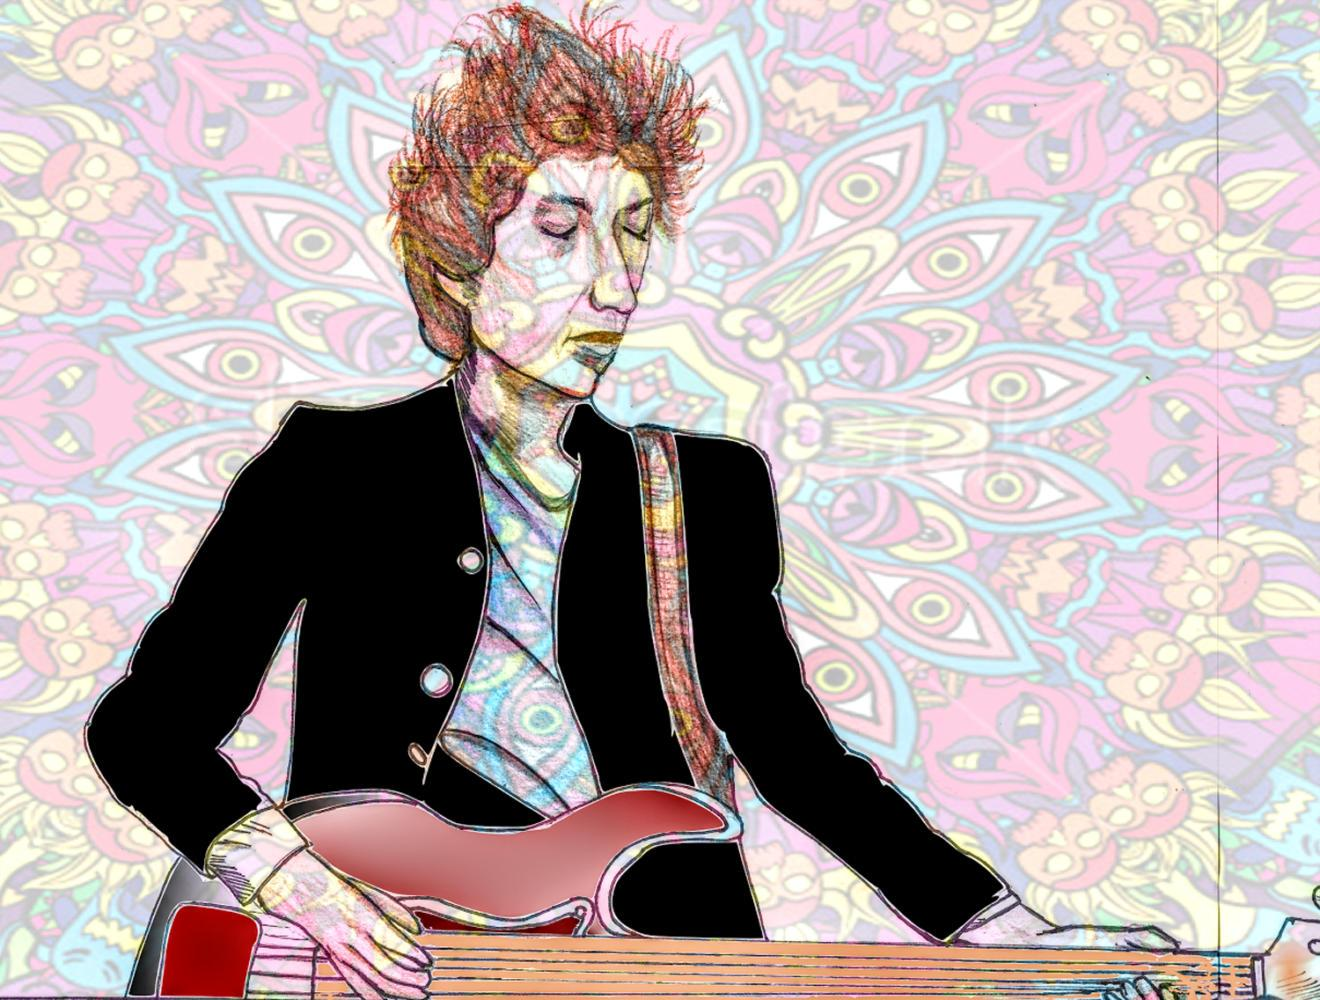 Rock legend Bob Dylan serenaded fans at Heinz Hall Nov. 6. (Illustration by Abby Katz | Staff Illustrator)